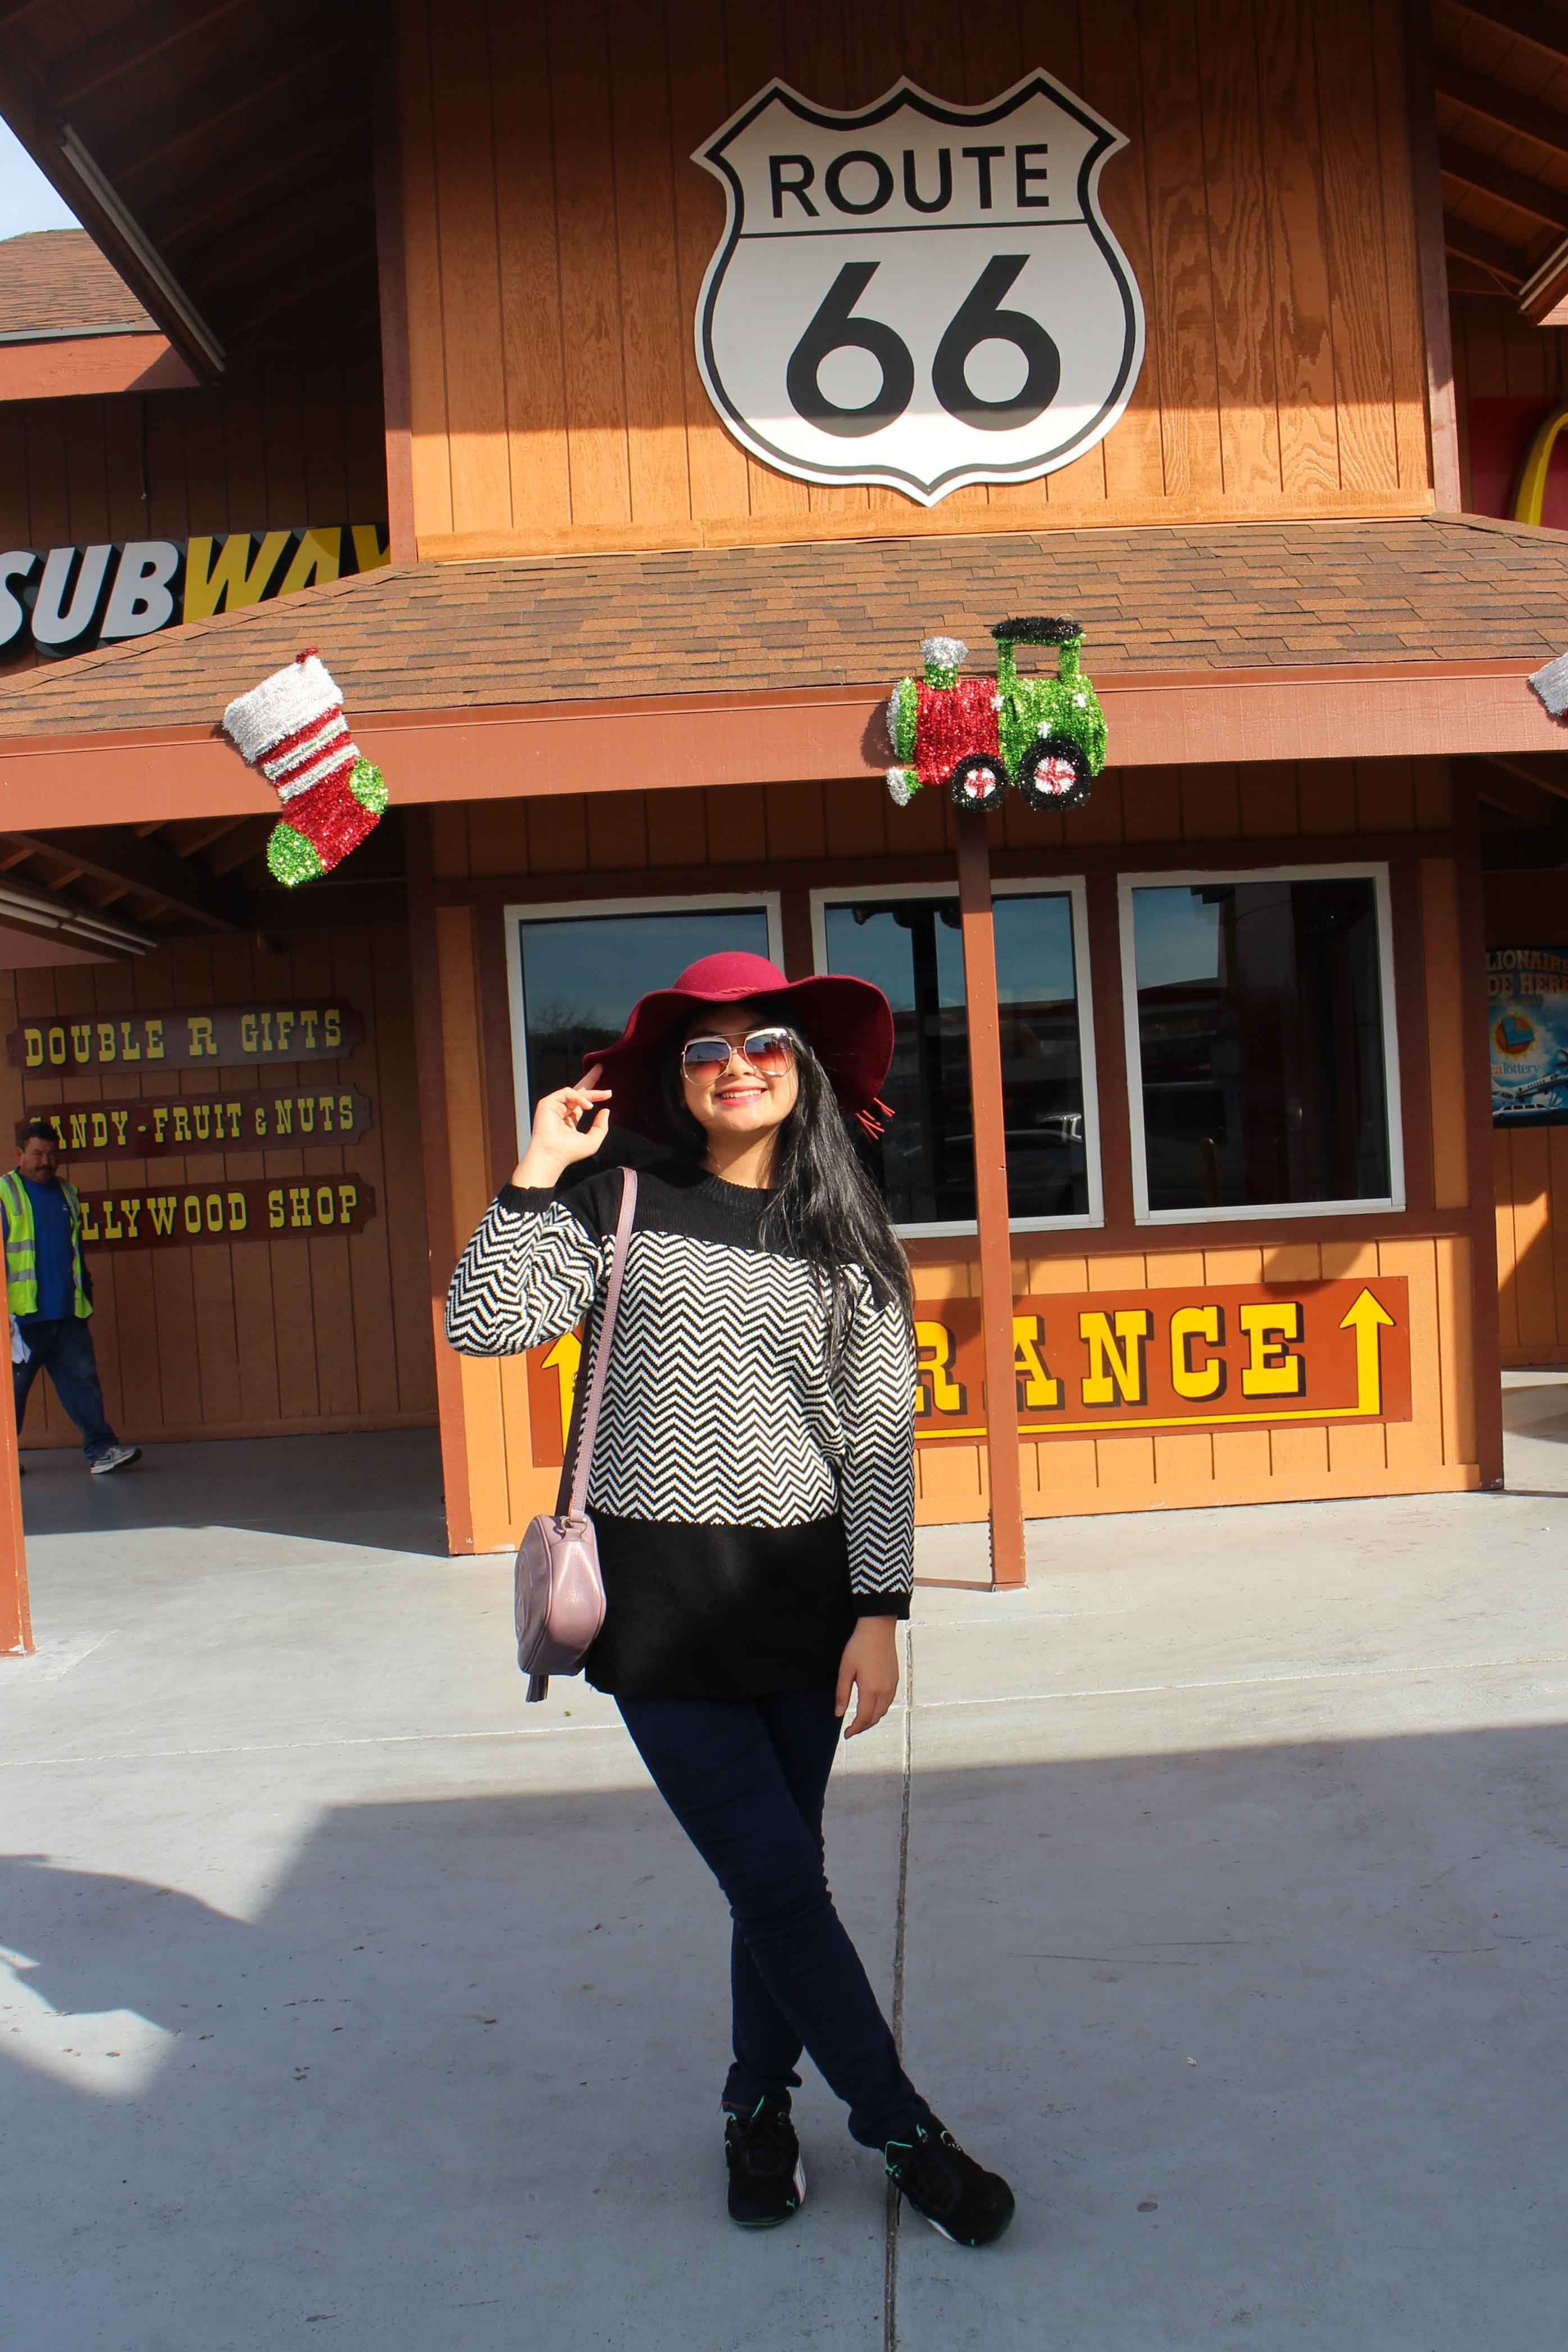 route 66 barstow stop